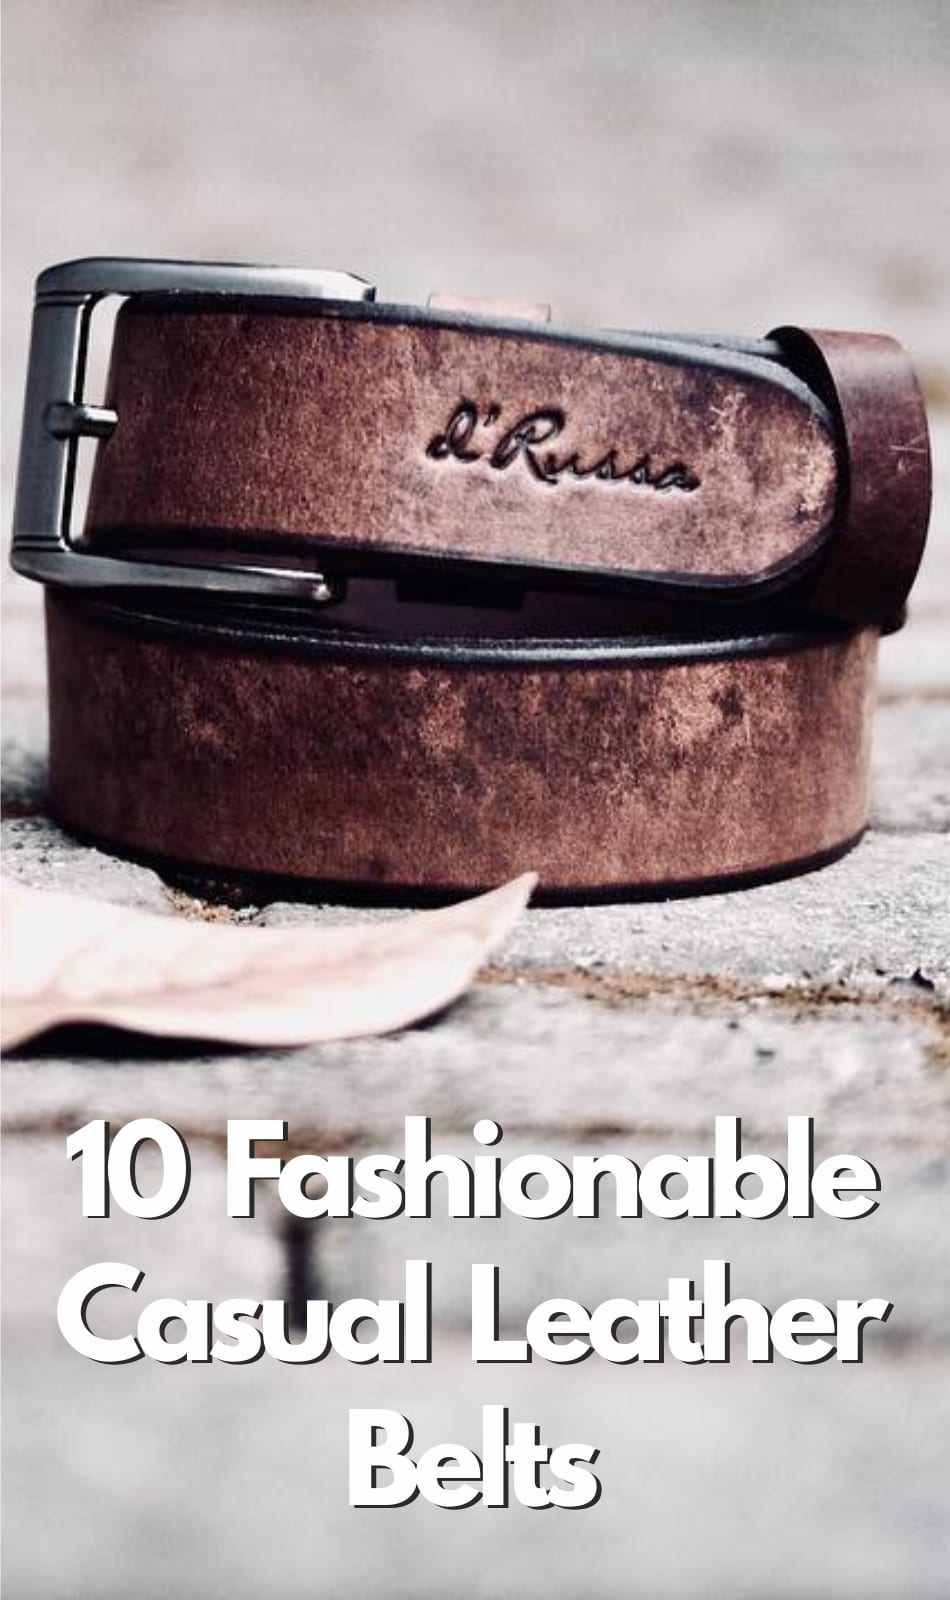 Casual Leather Belts for men